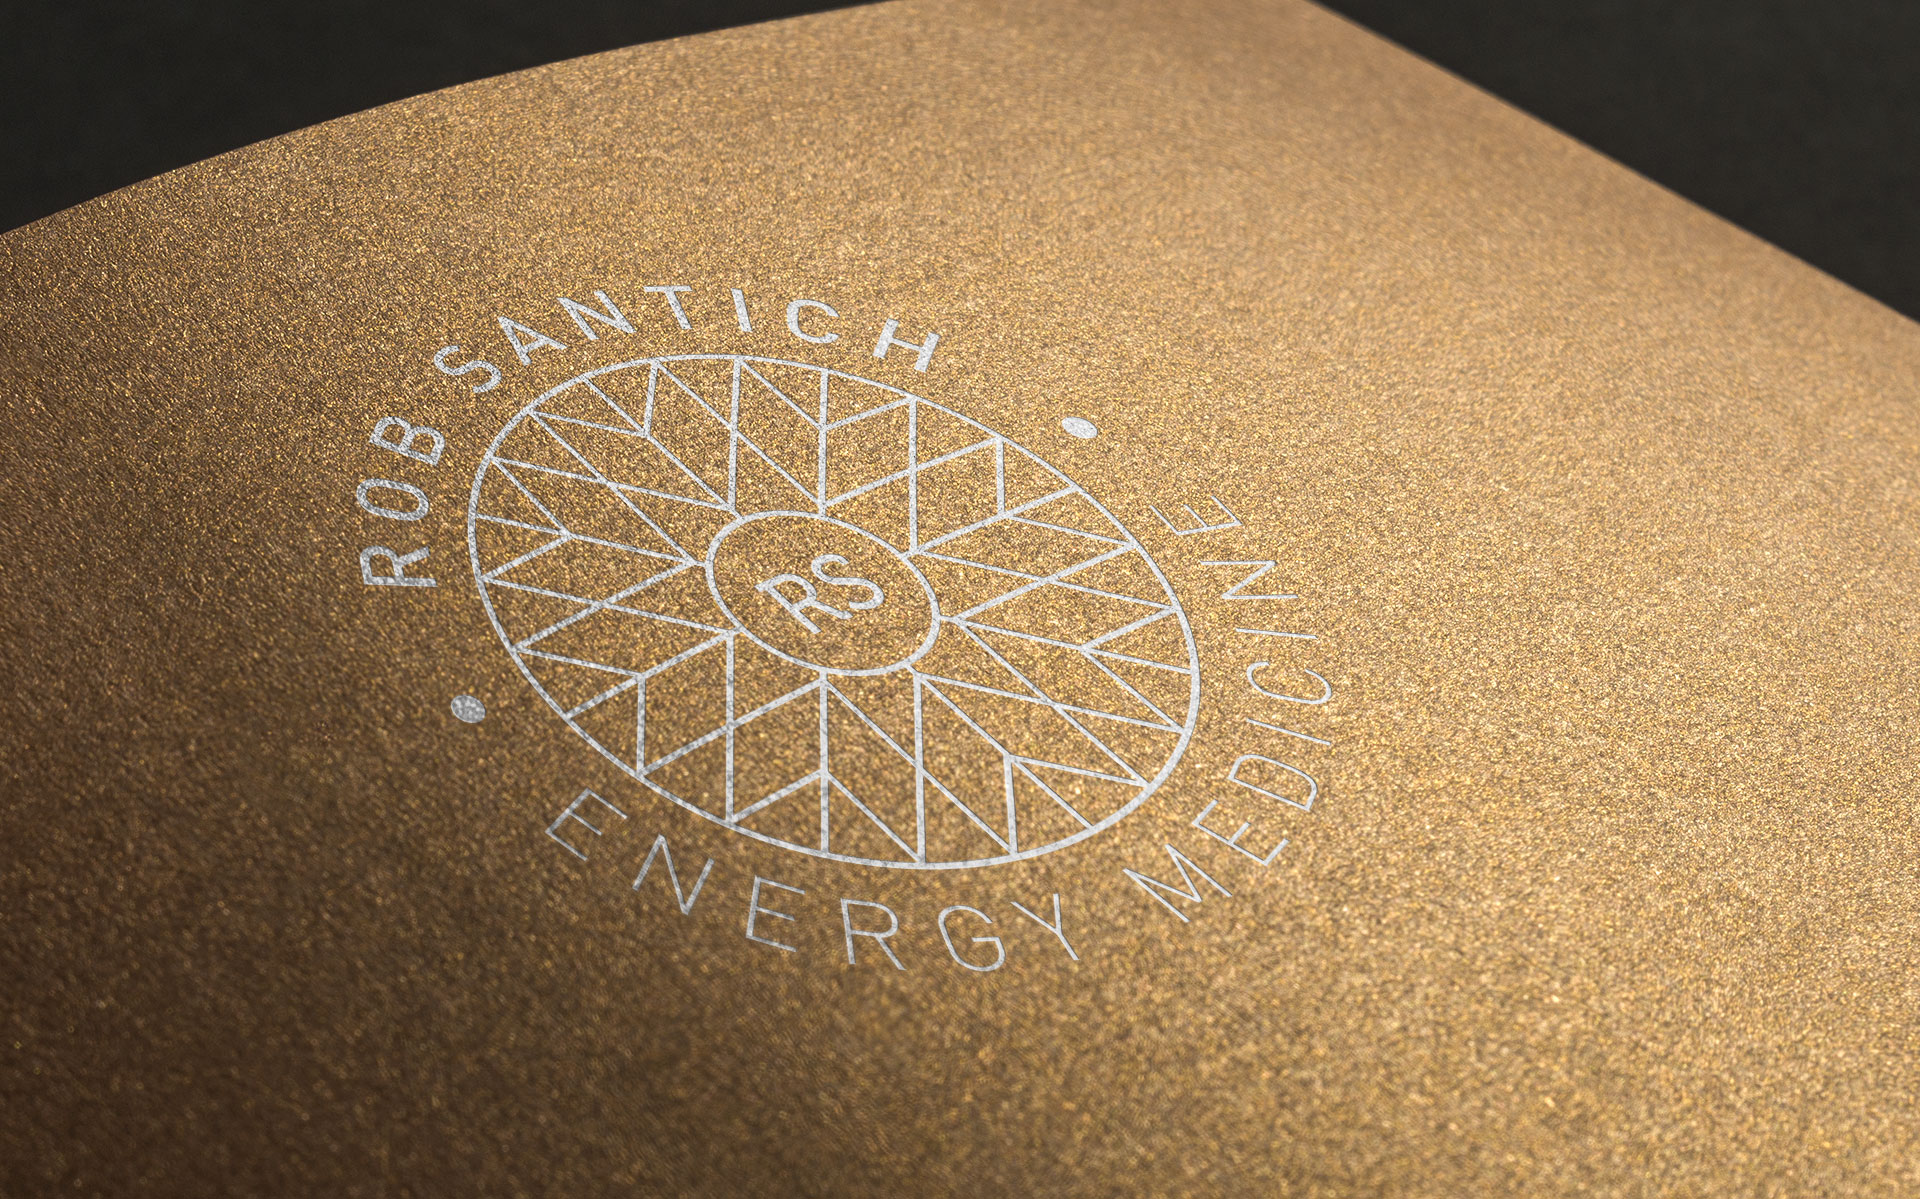 Rob Santich Energy Medicine logo & branding designed by Amy at Yellow Sunday